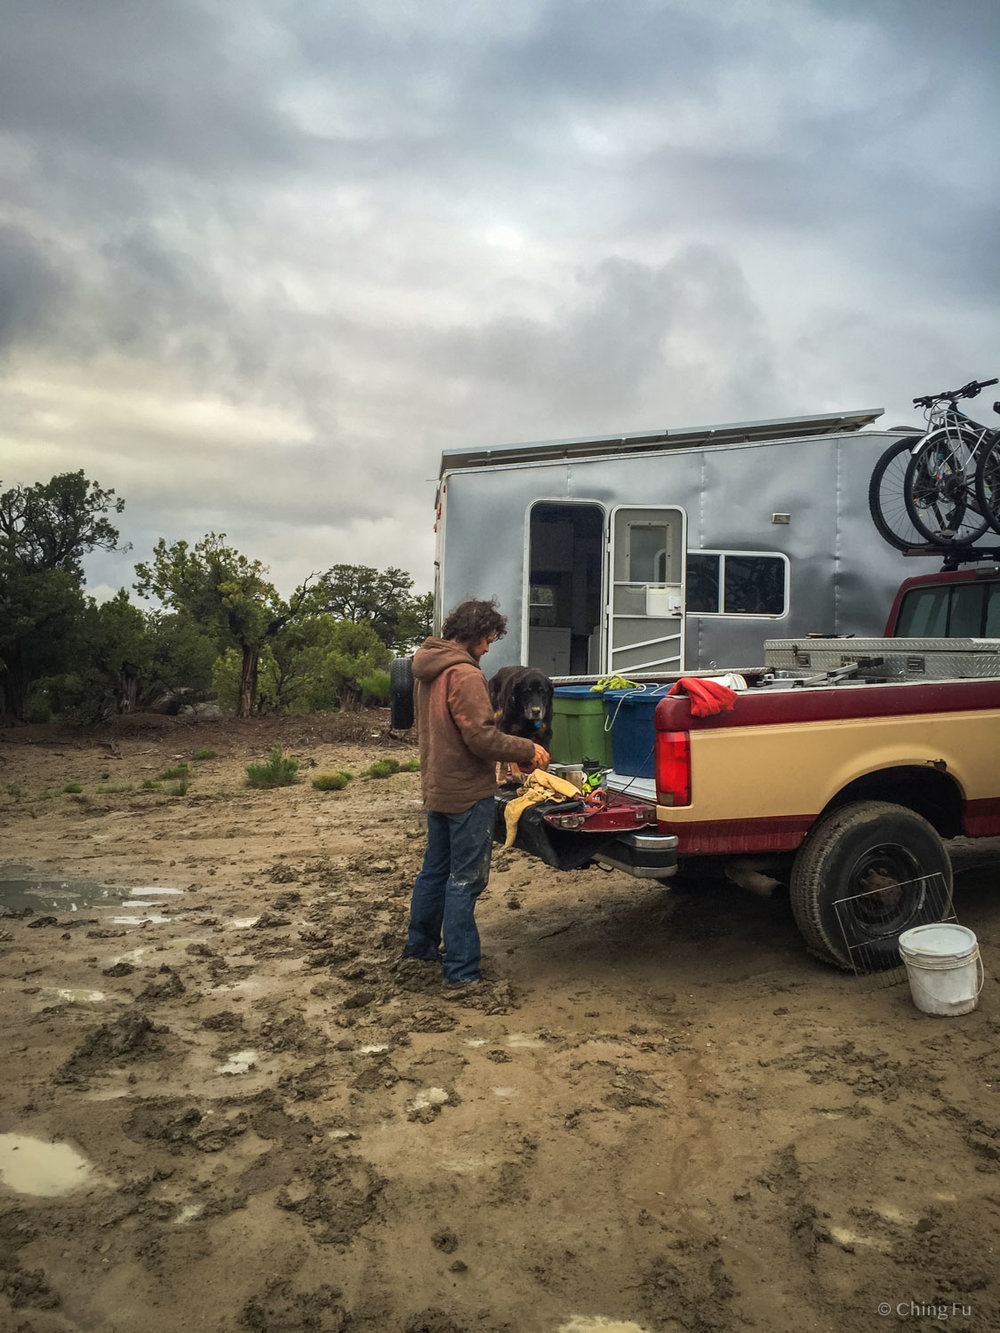 It rained hard on us while we were boondocked in Colorado in late spring (aka mud season). The dogs were covered in mud after our walks and we had to wash their feet off on the tailgate and then carry them into the Toaster. We learned our lesson after this incident.